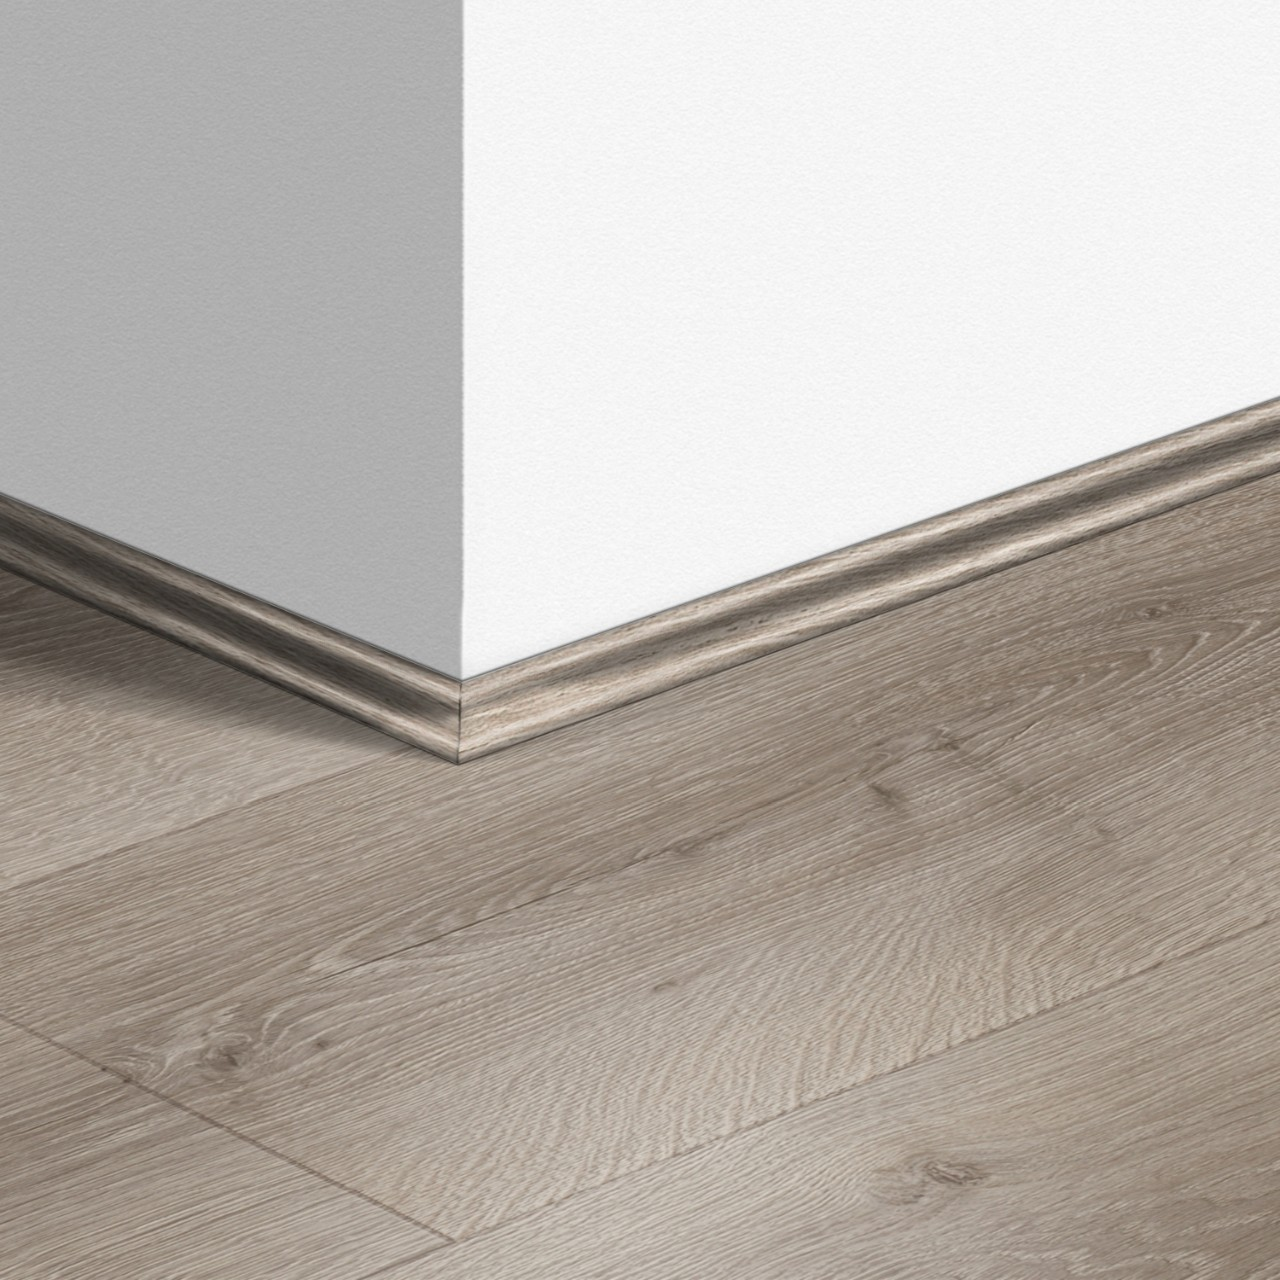 QSSCOT Laminate Accessories Desert Oak Brushed Grey QSSCOT03552